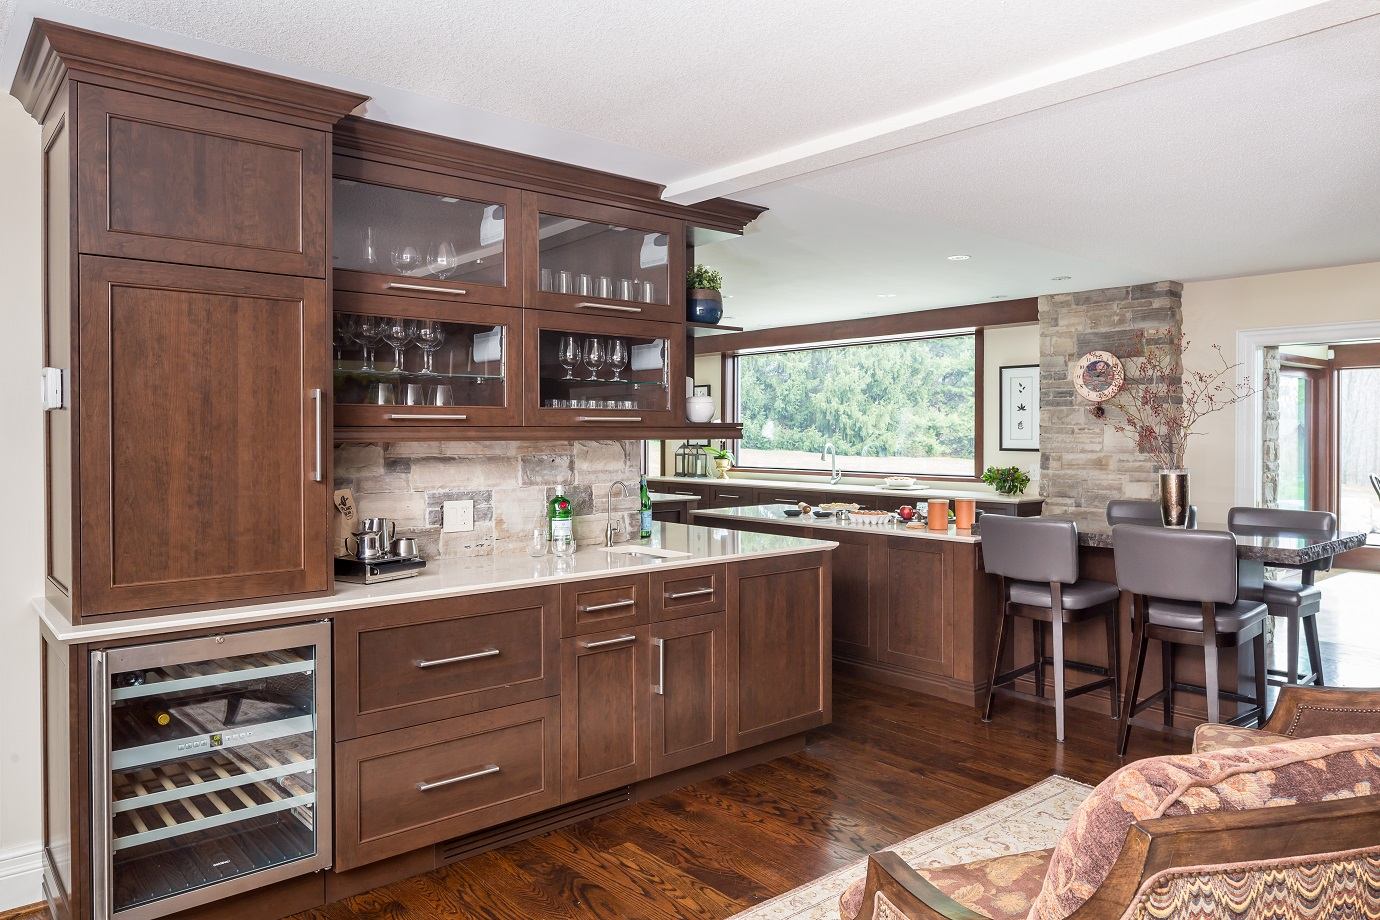 Apple Lane Kitchen Gallery Paragon Kitchens